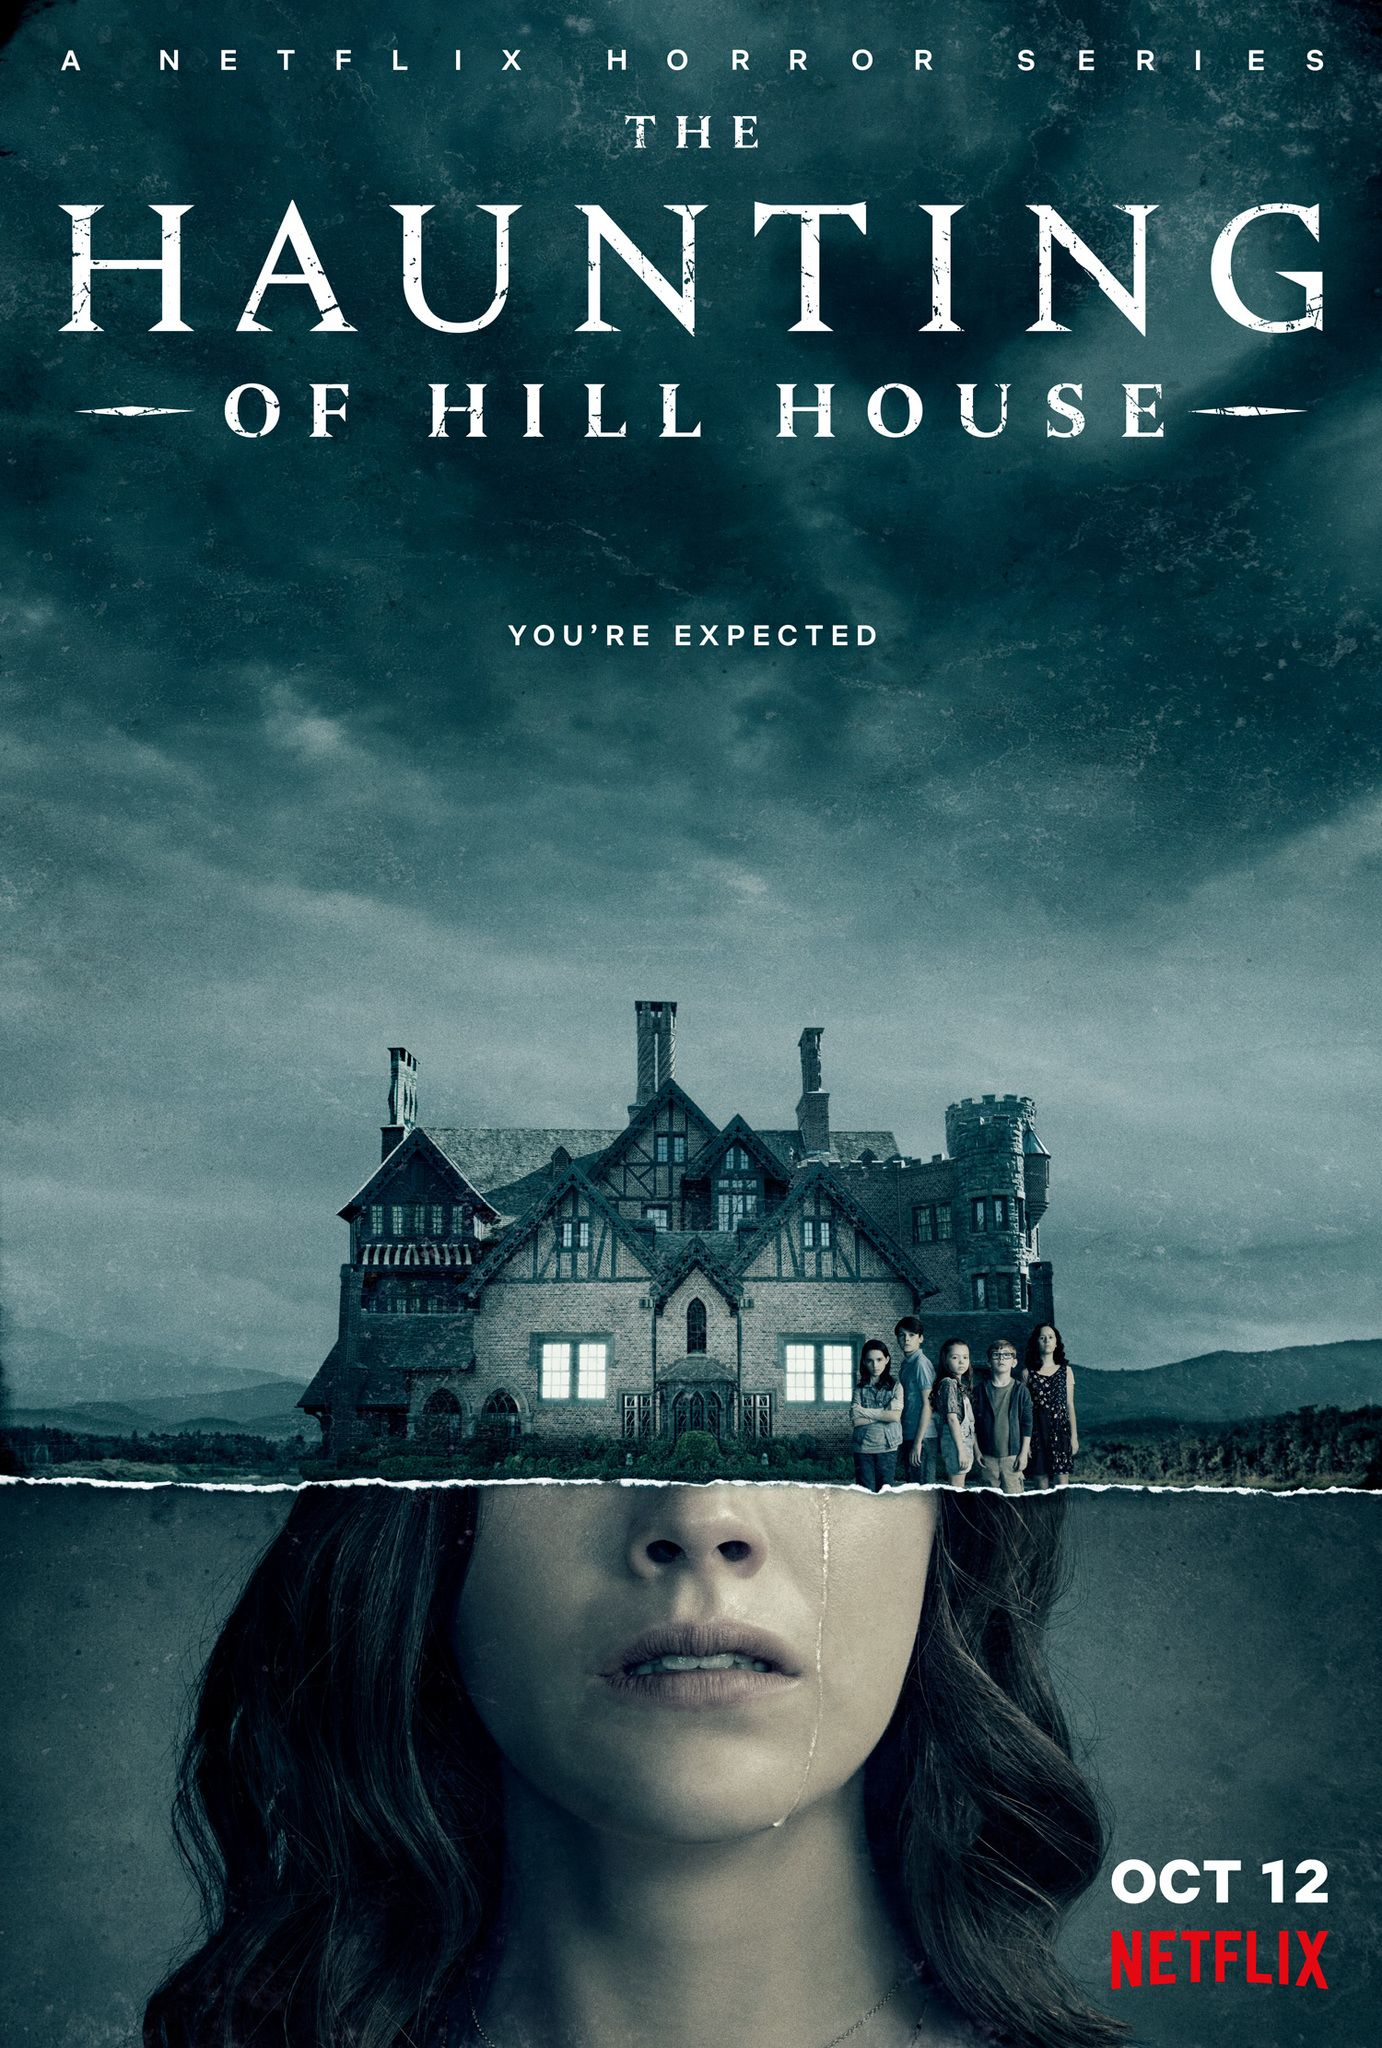 The Haunting of Hill House by Netflix